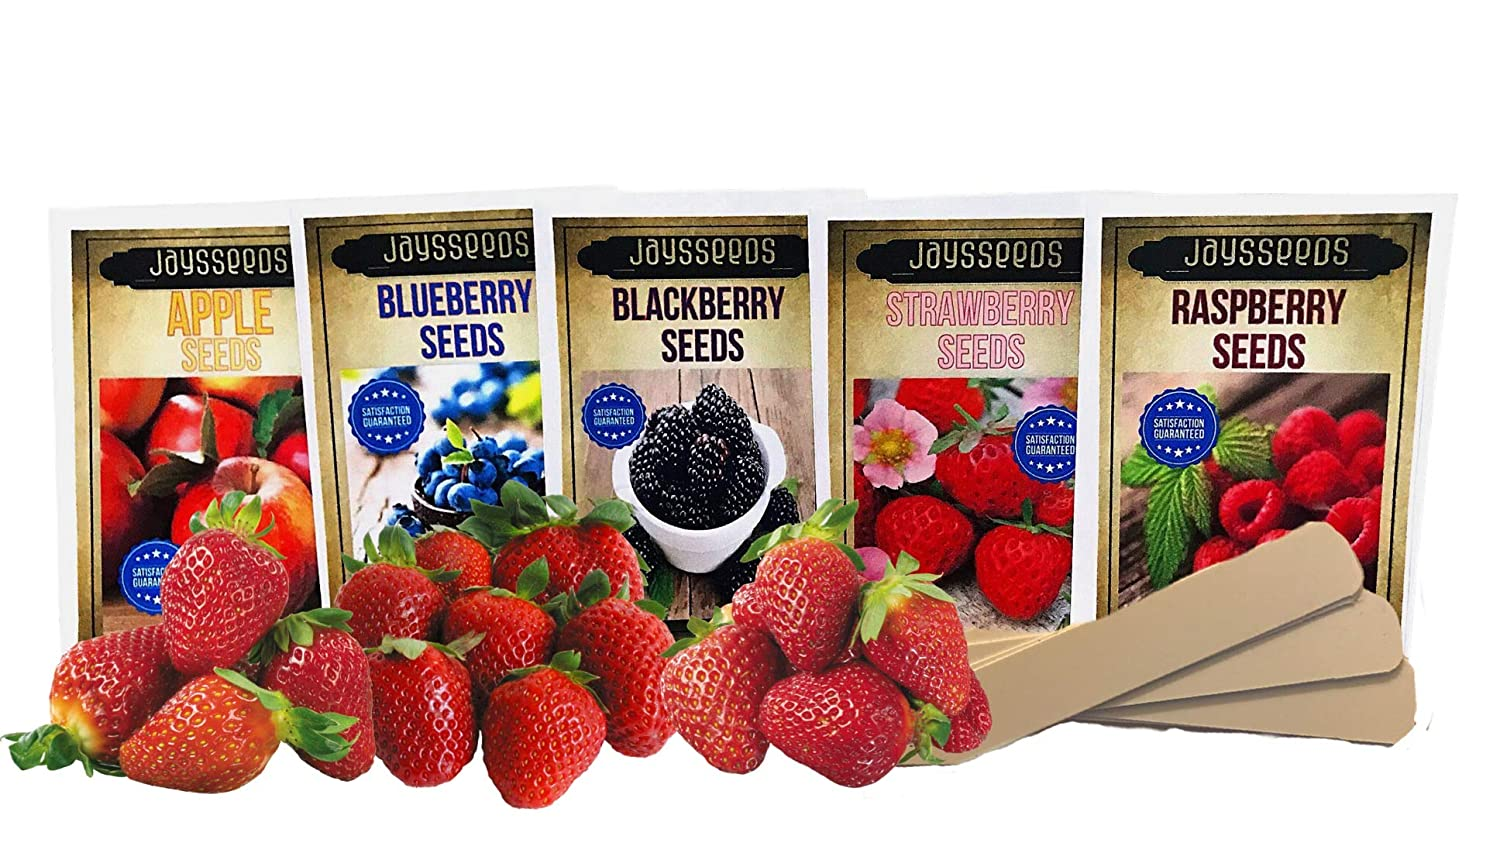 Blackberry Strawberry Pictures